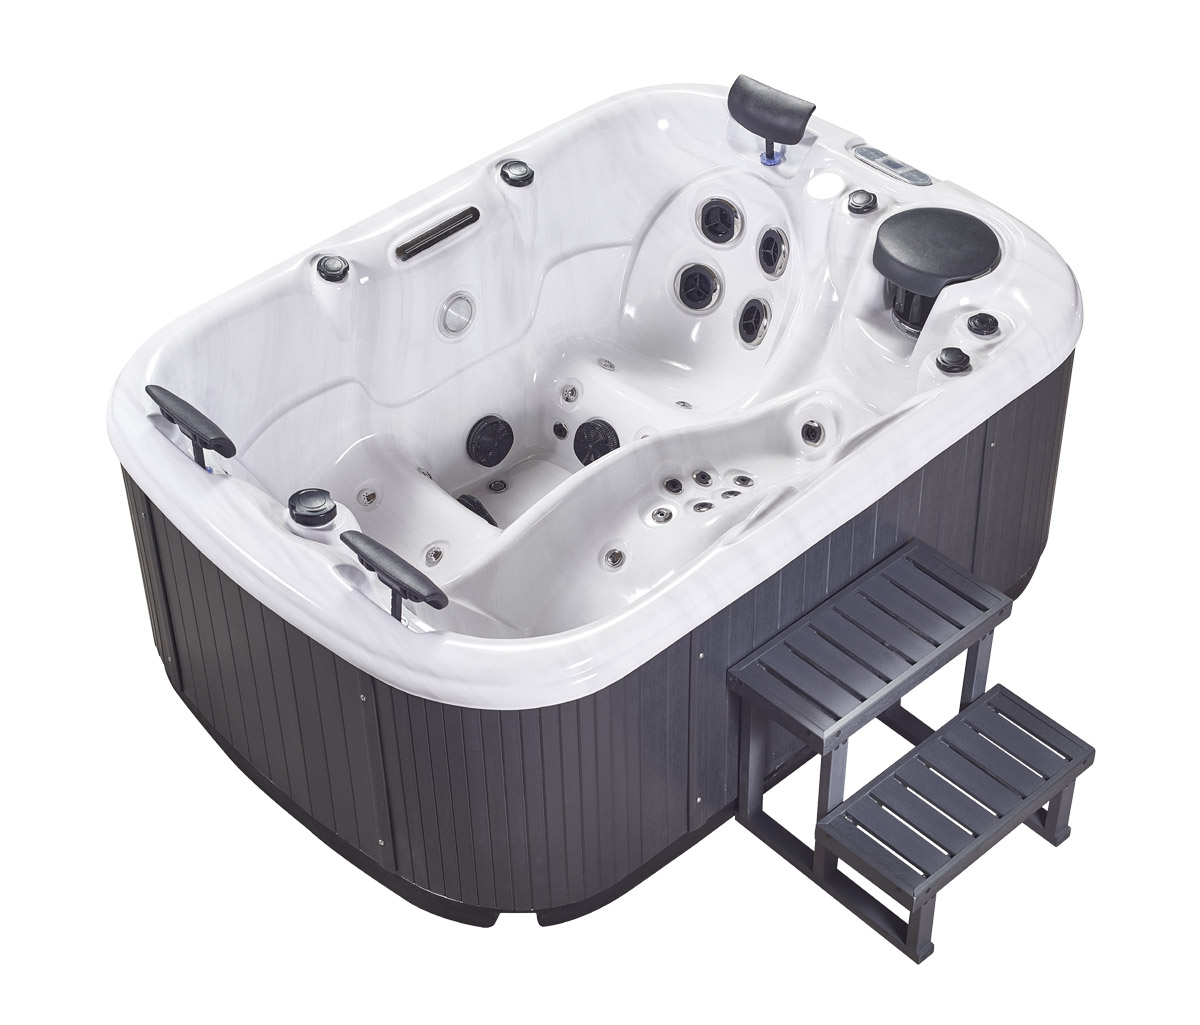 Hydrolux Hl 85 3 Seater Lounger Hot Tub Hydrolux Hot Tubs And Spas